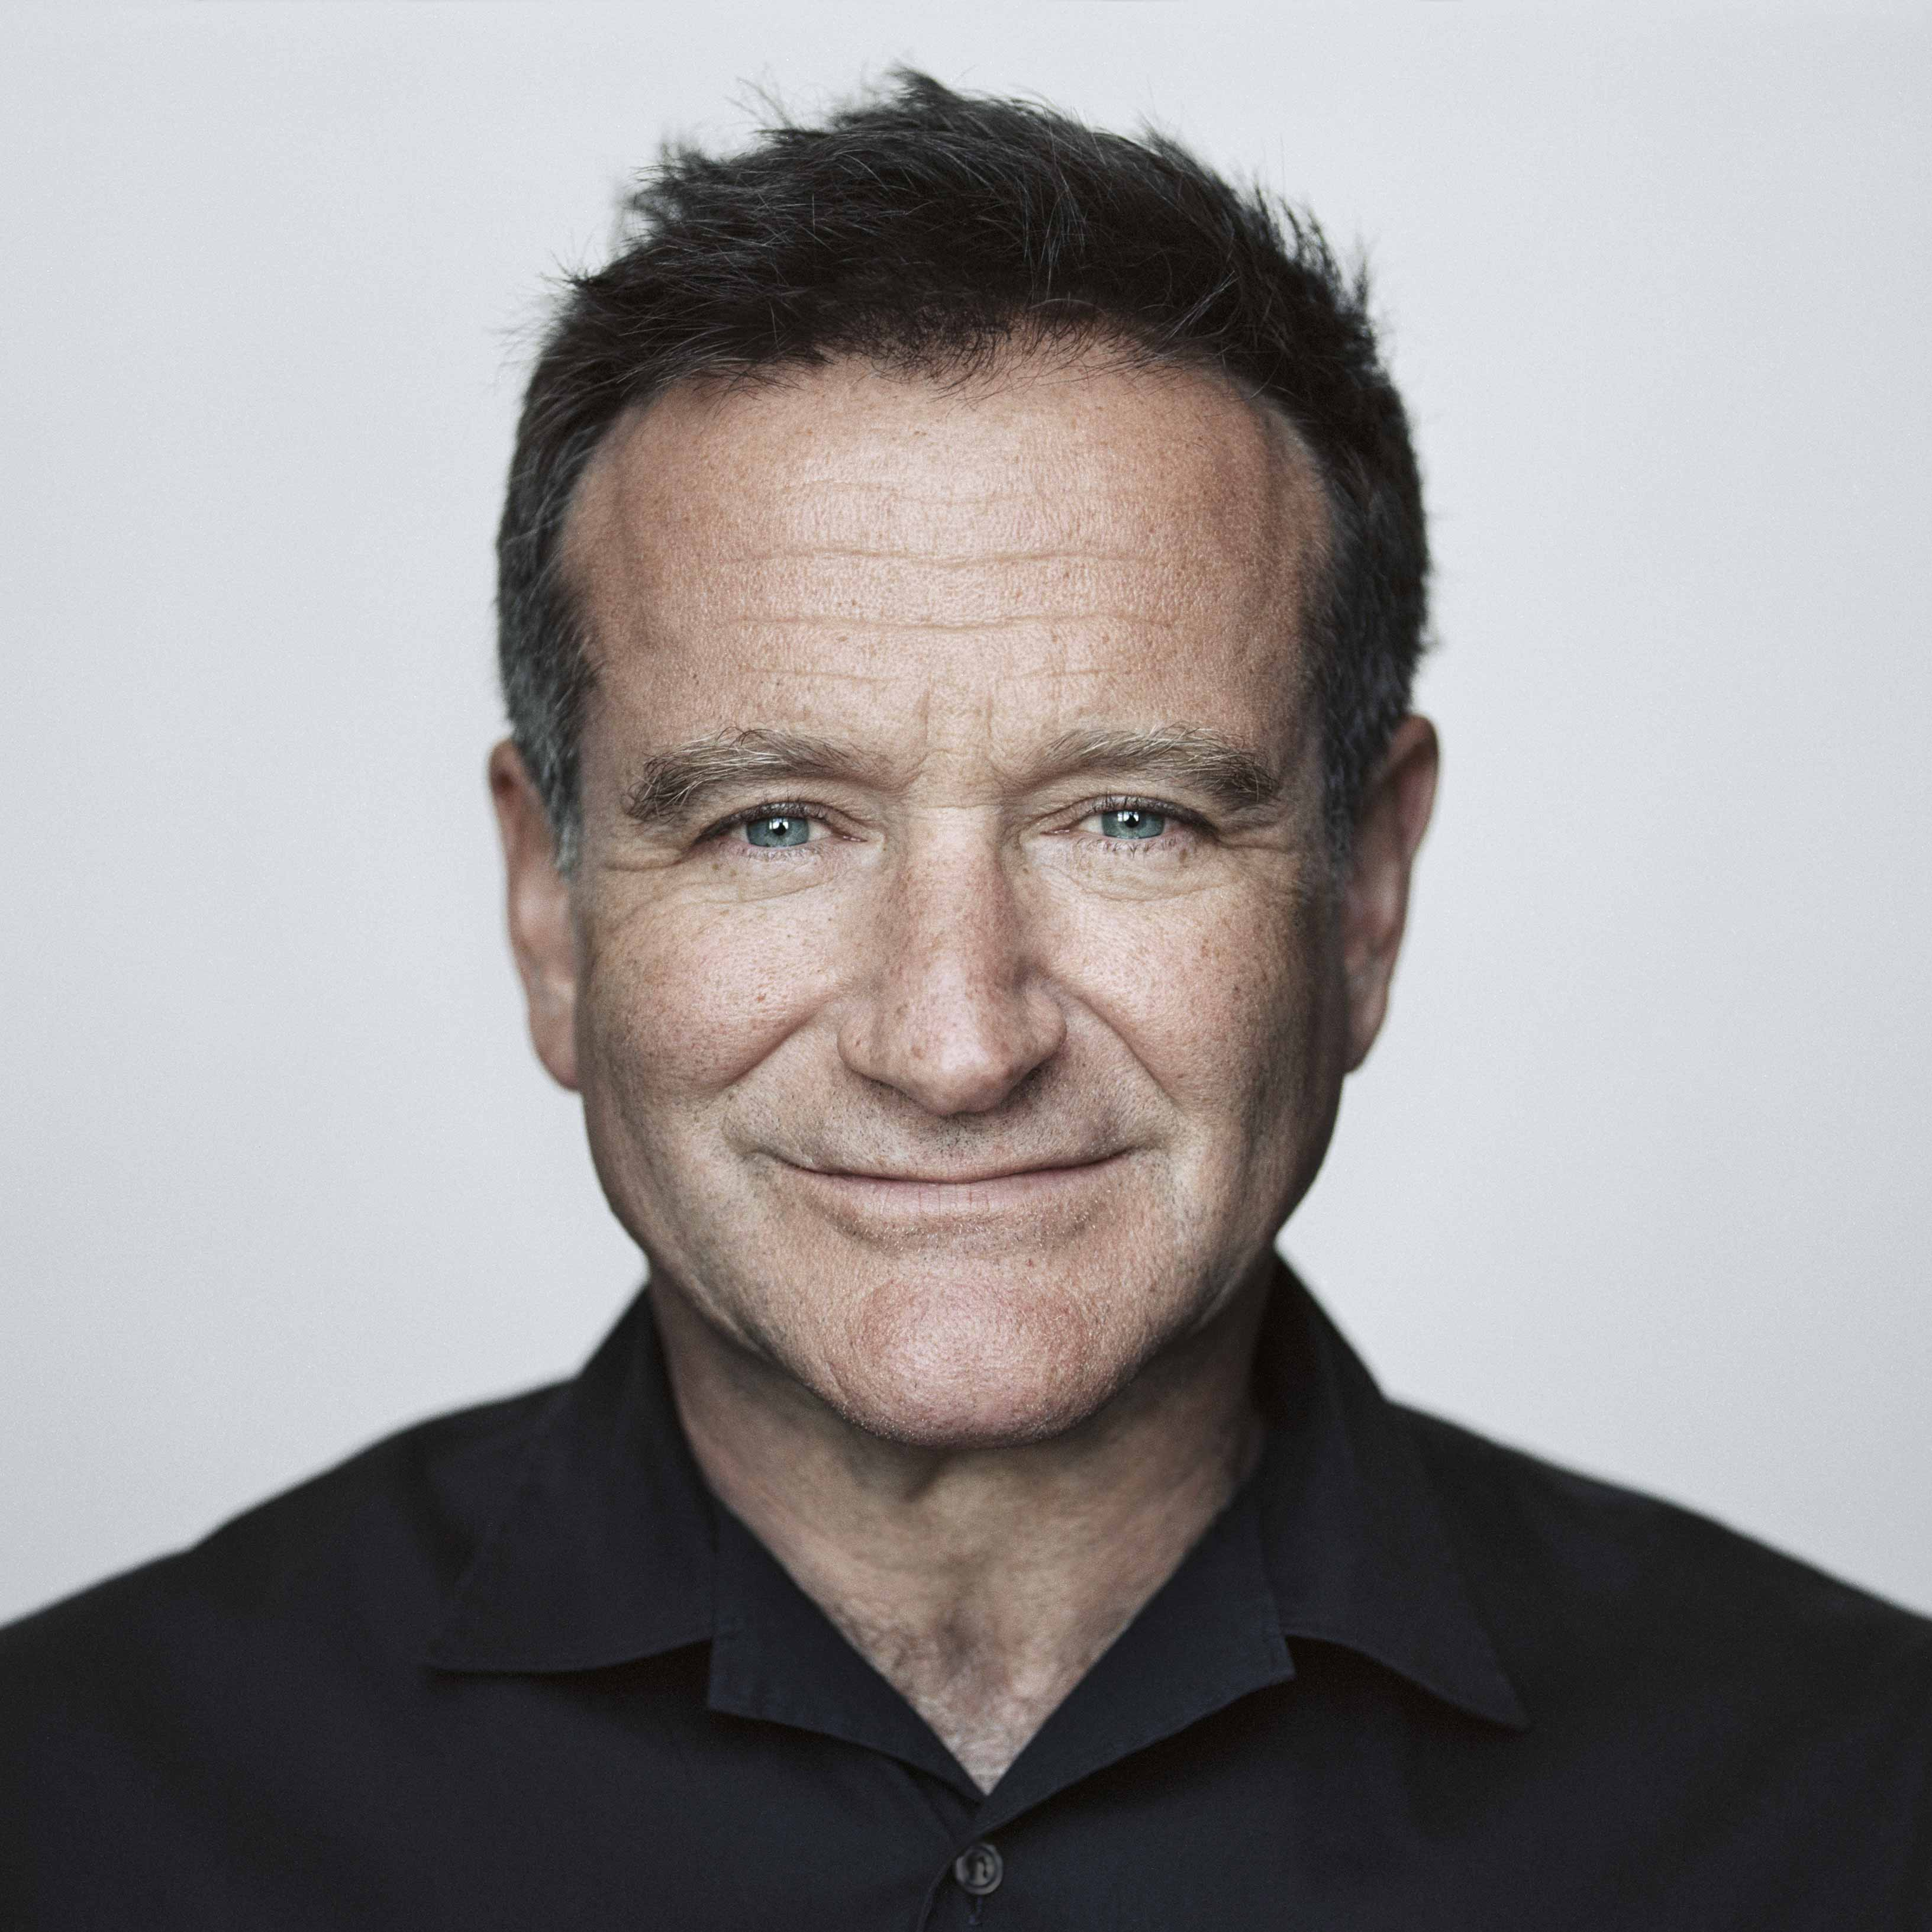 Robbin Williams committed suicide